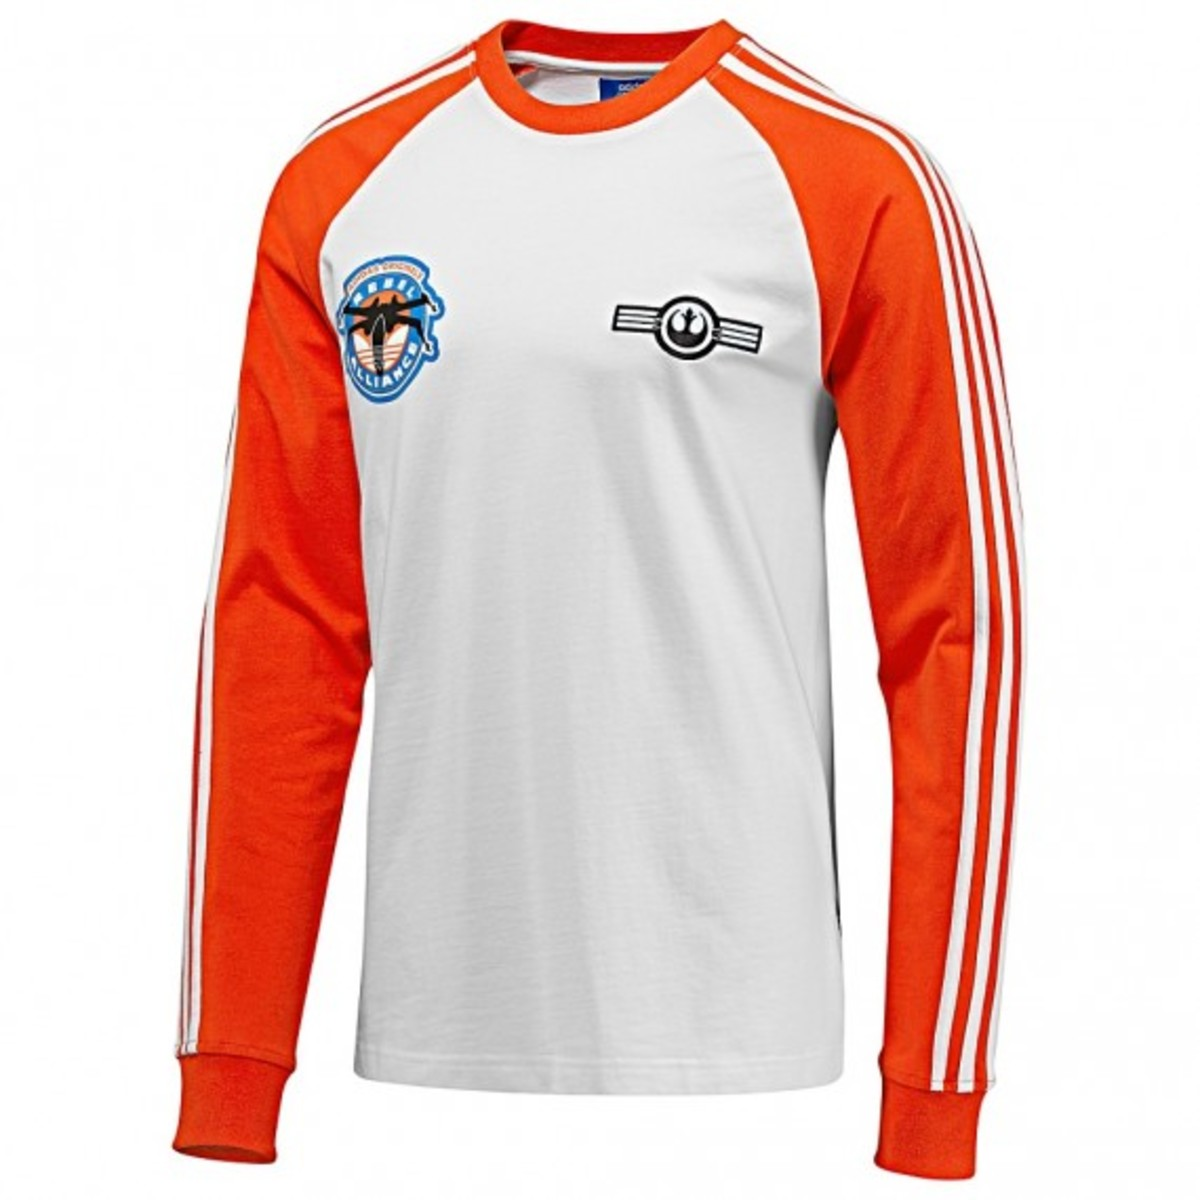 star-wars-adidas-originals-hoth-collection-apparel-available-now-03